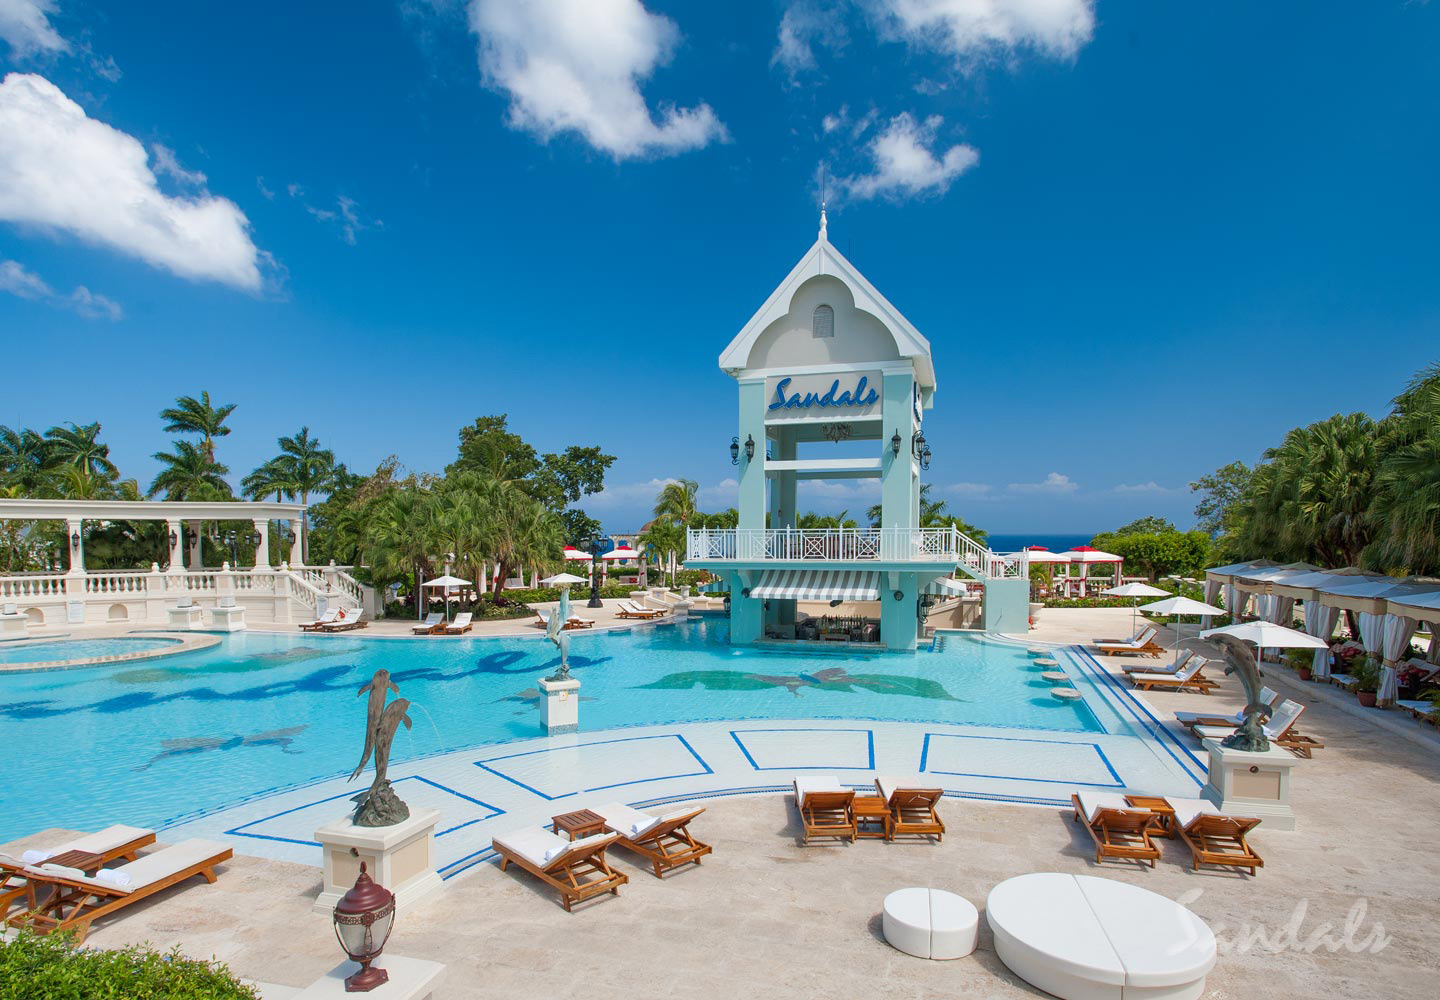 Travel Agency All-Inclusive Resort Sandals Ochi 153